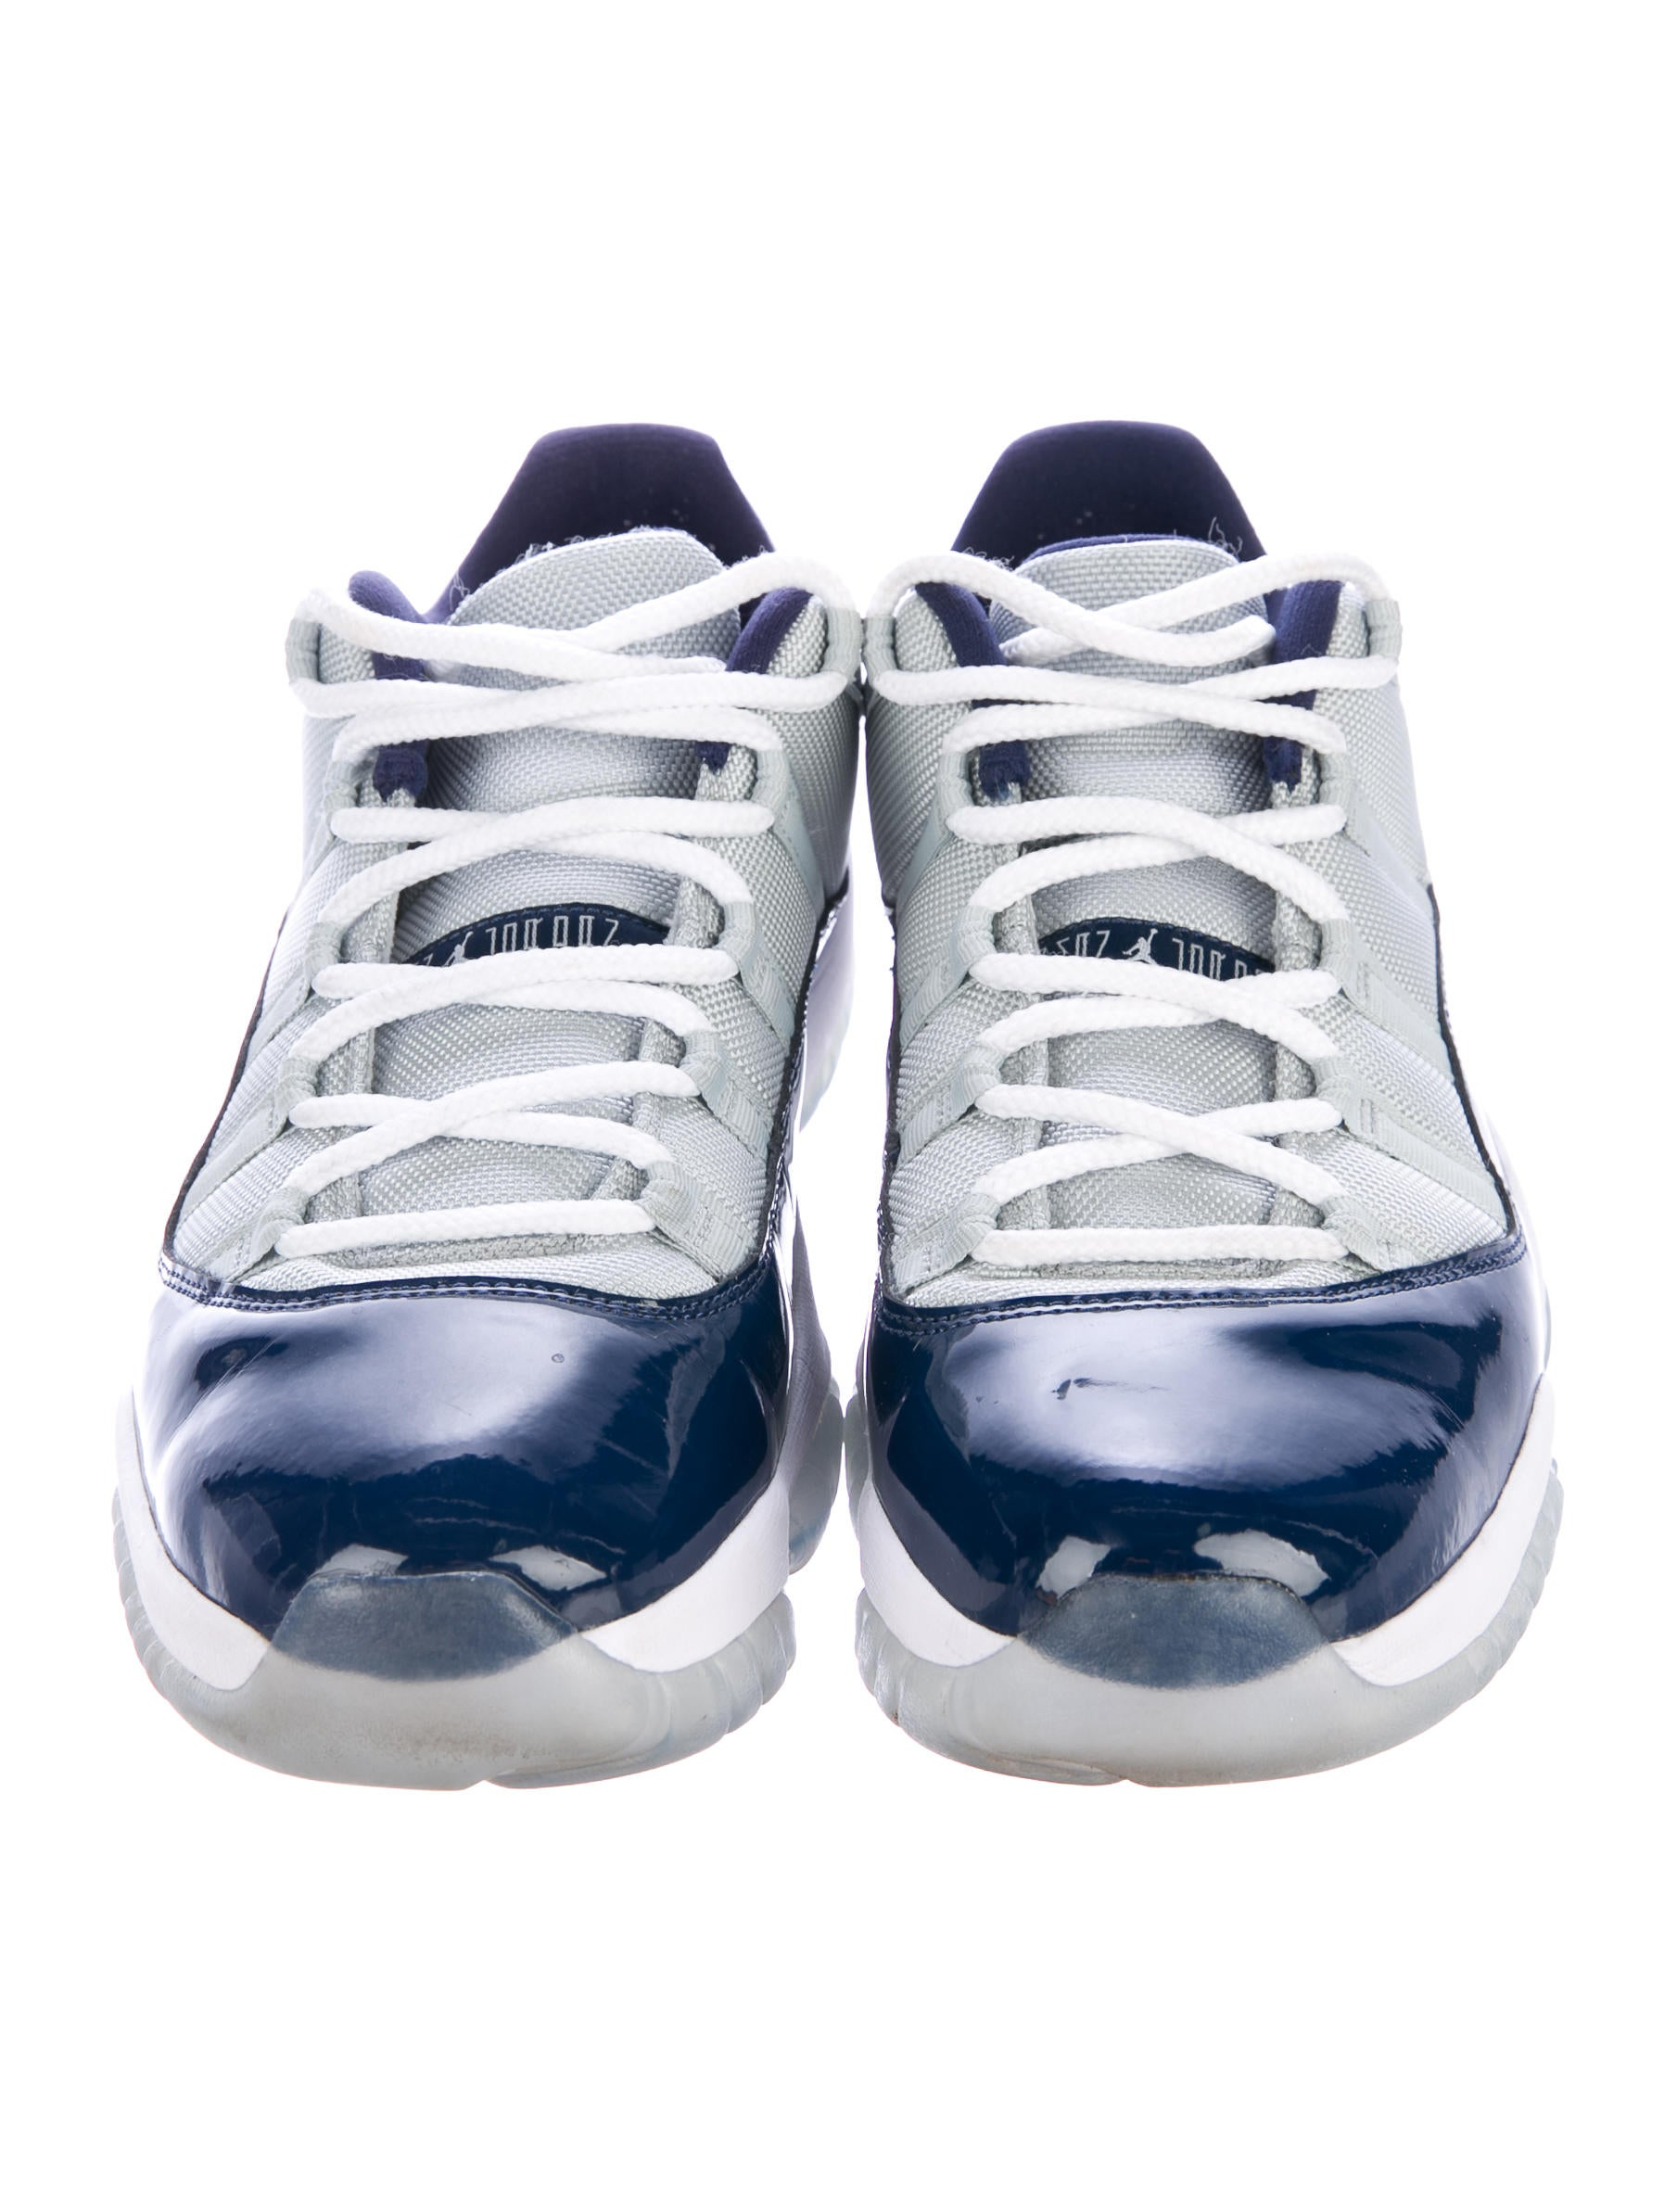 Nike Georgetown Shoes